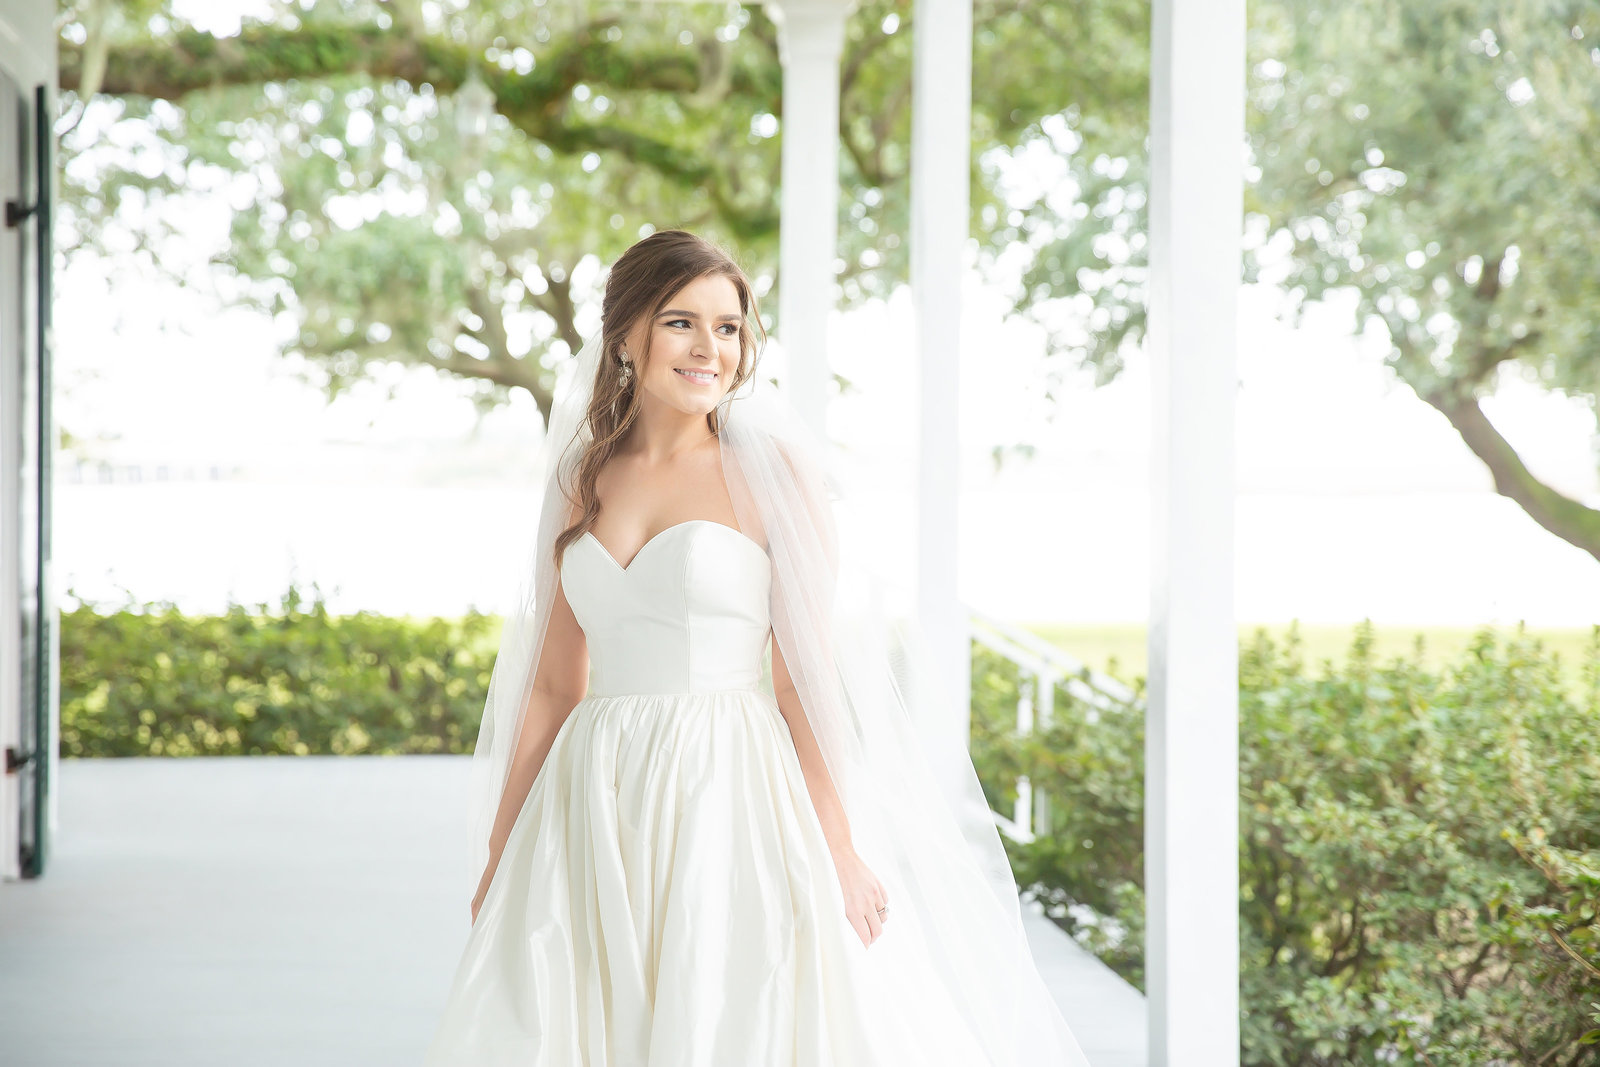 Bridal Portrait Photographers in South Mississippi